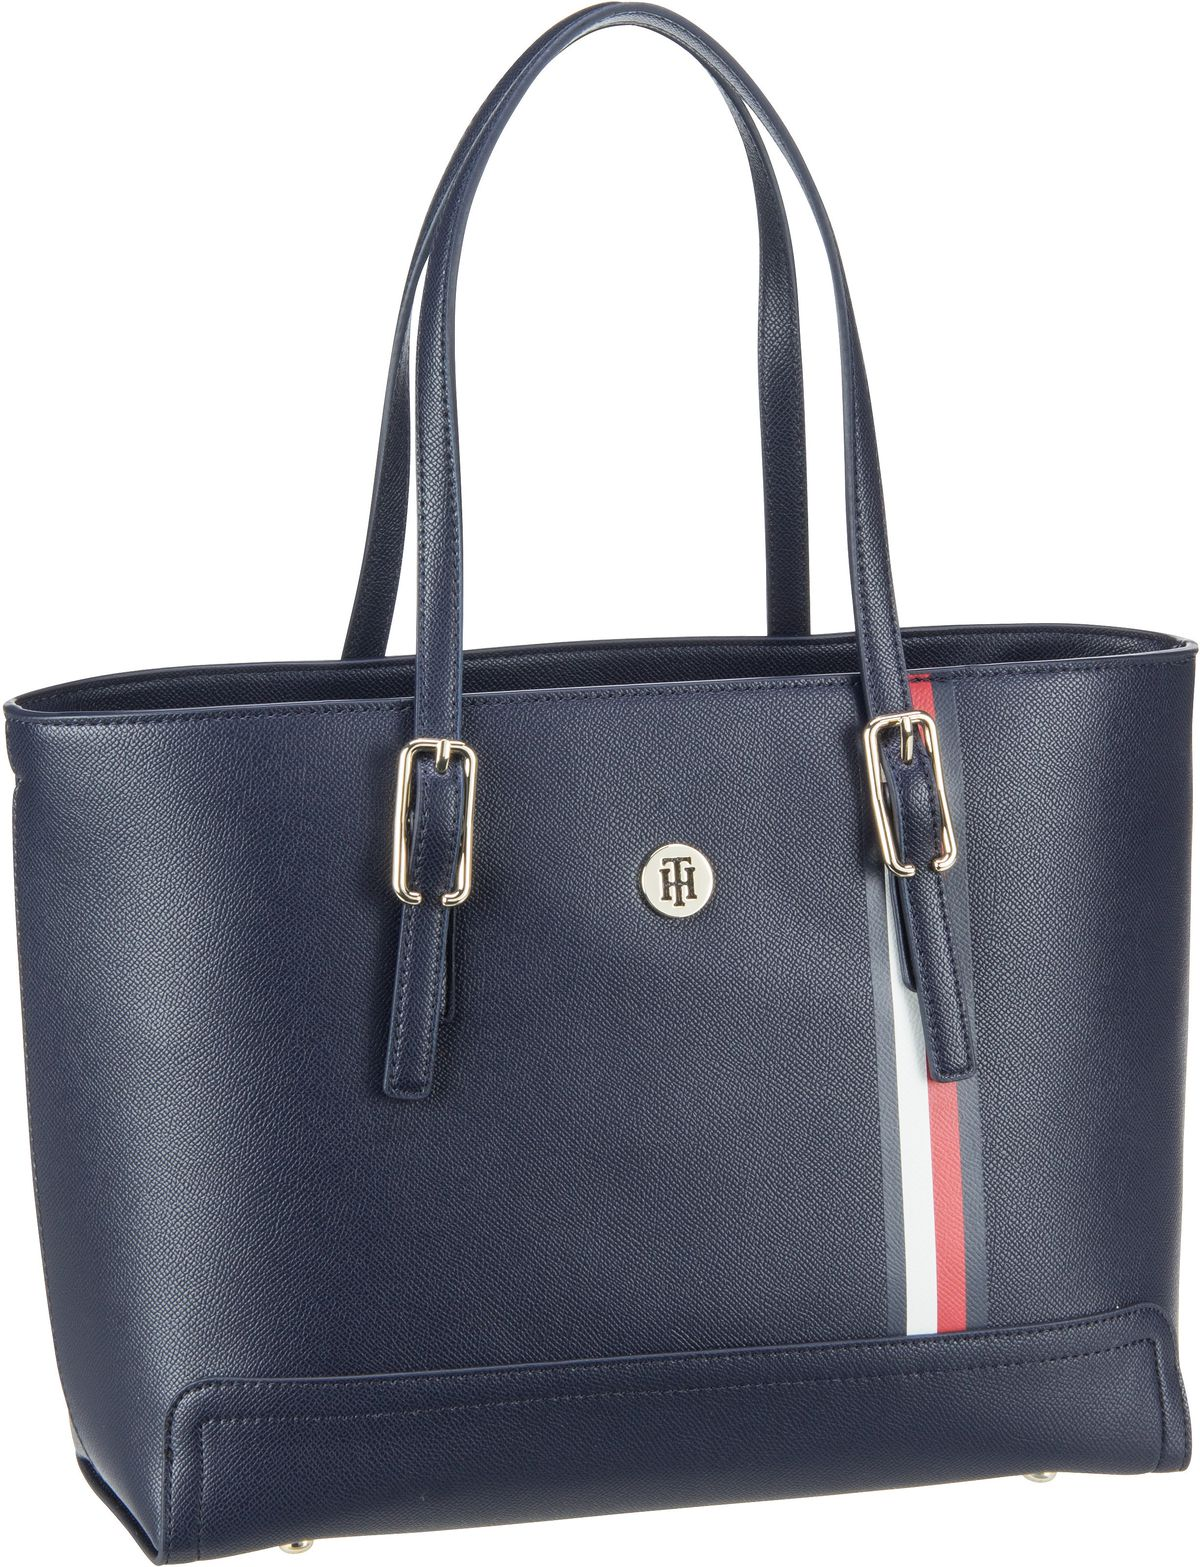 Shopper Honey Med Tote 7933 Sky Captain